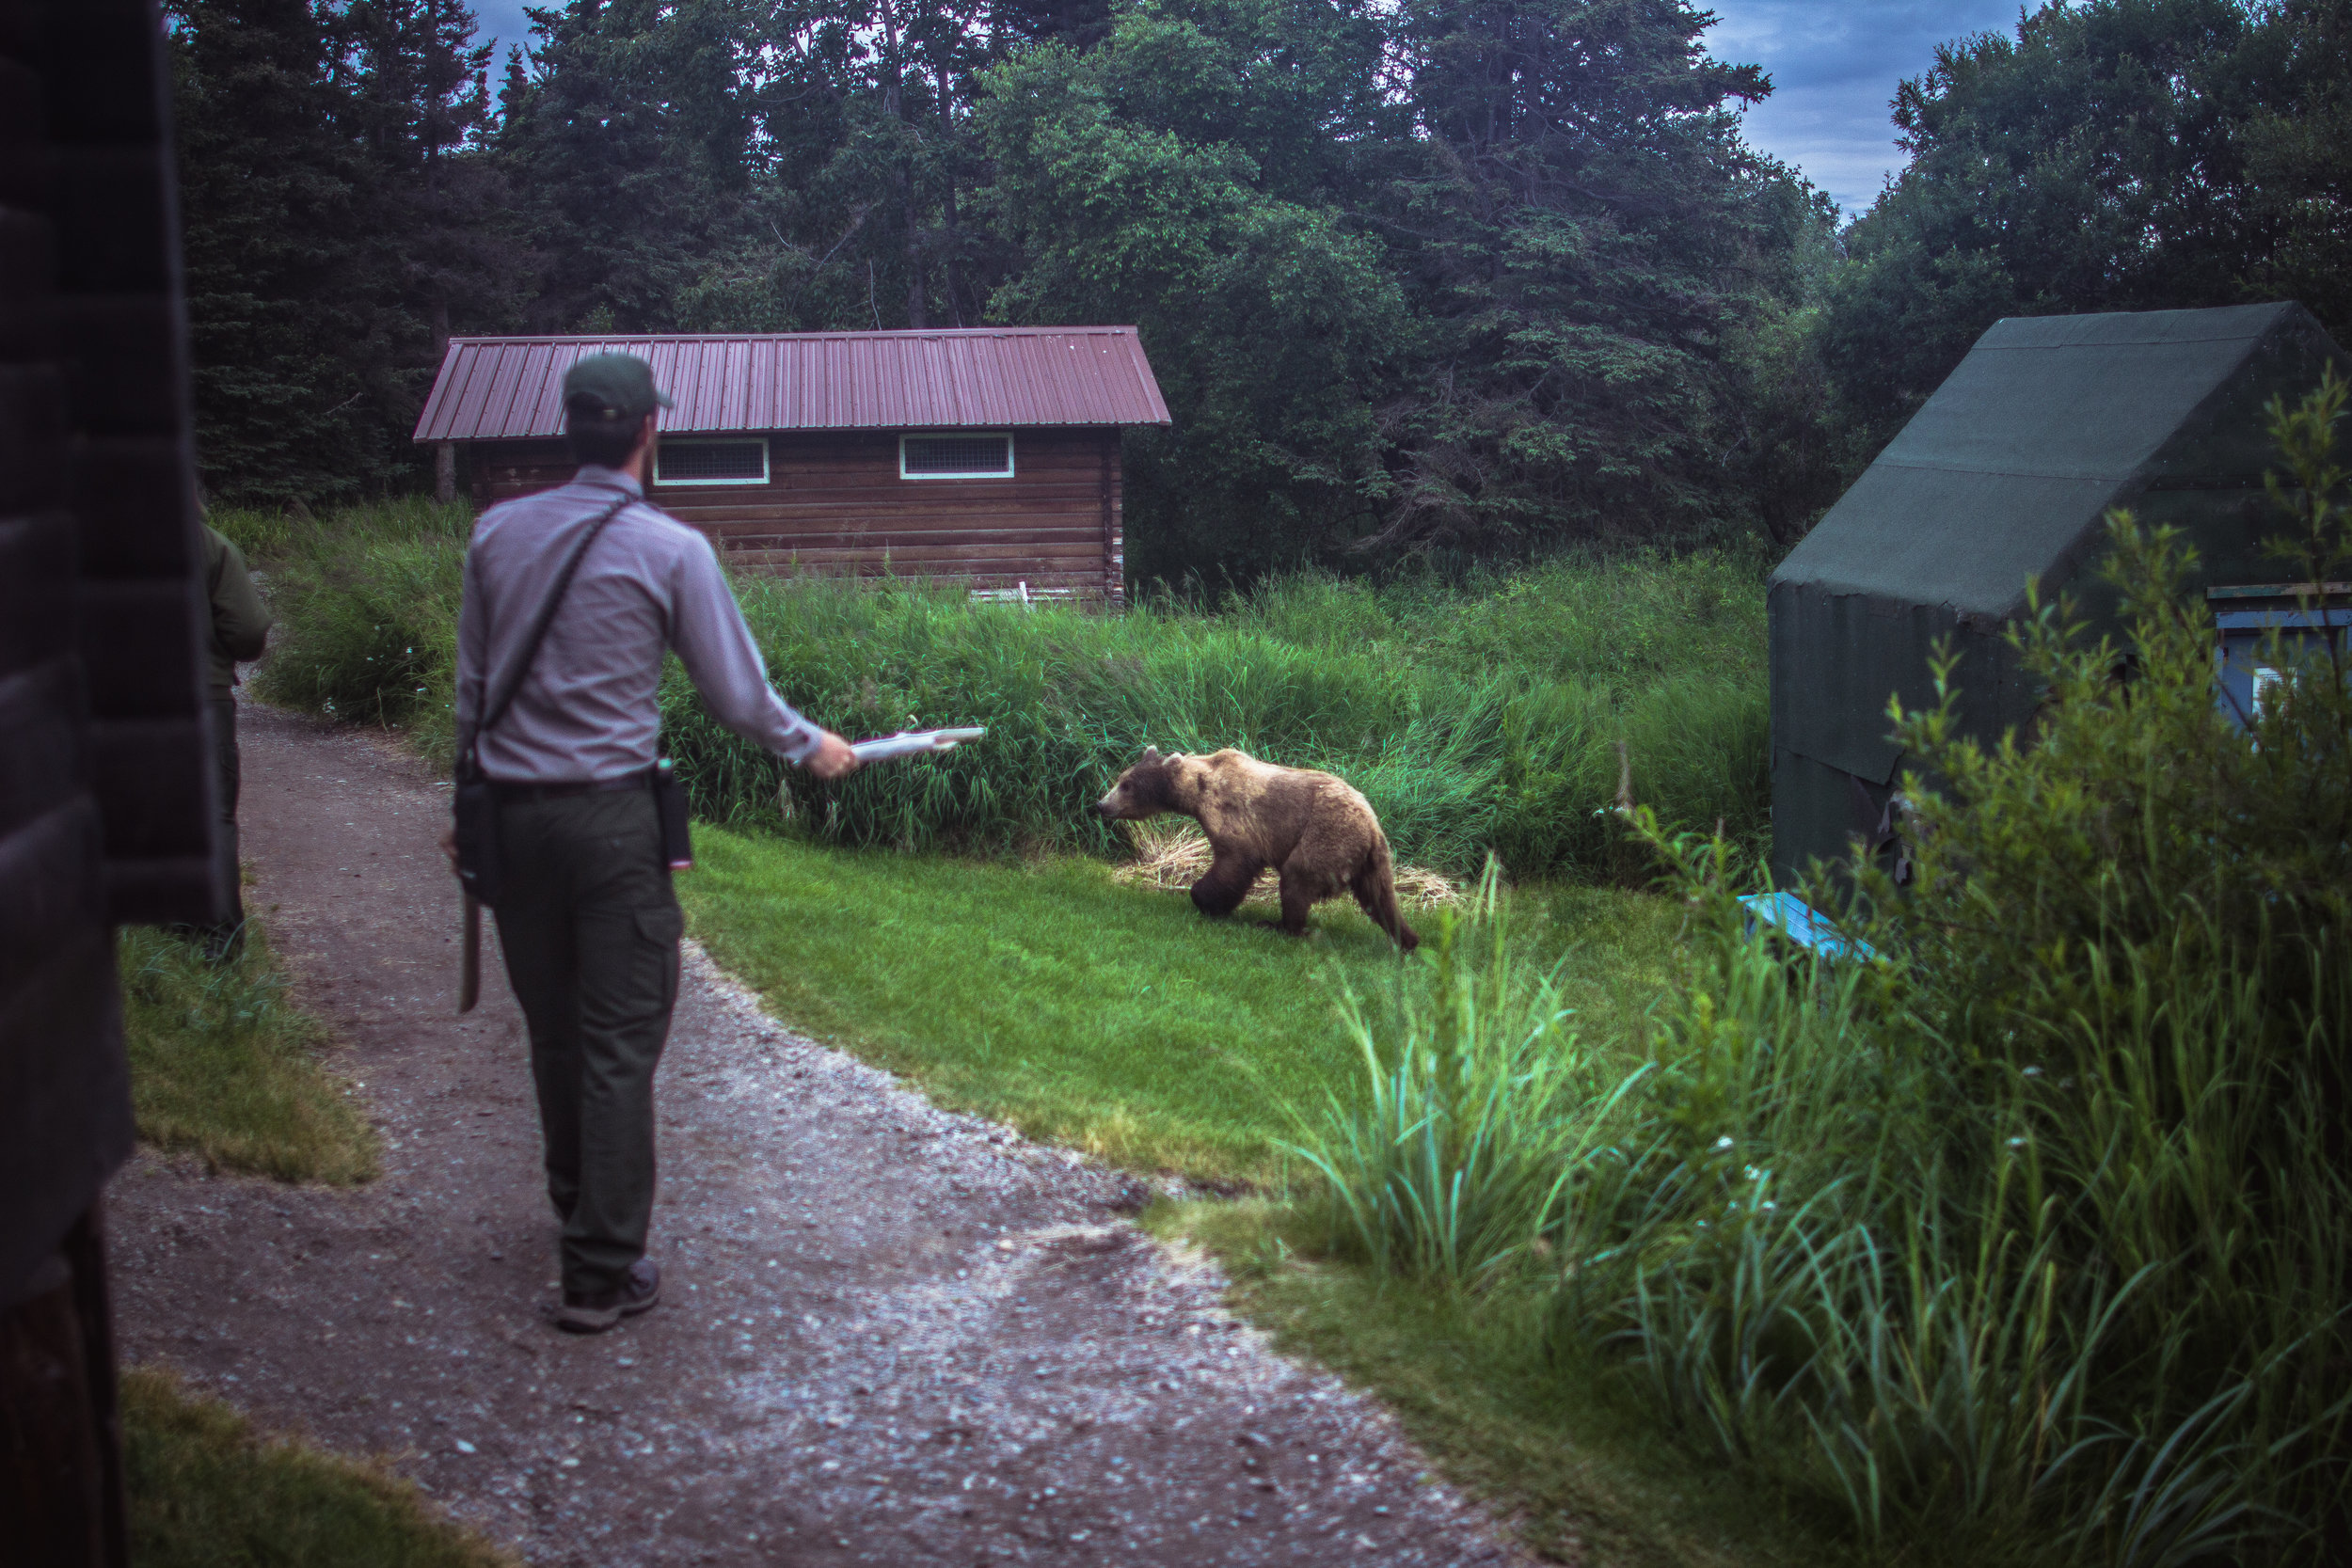 The natural sounds of feet scuffing gravel and branches snapping seem to motivate bears to run away far better than yelling or clapping.